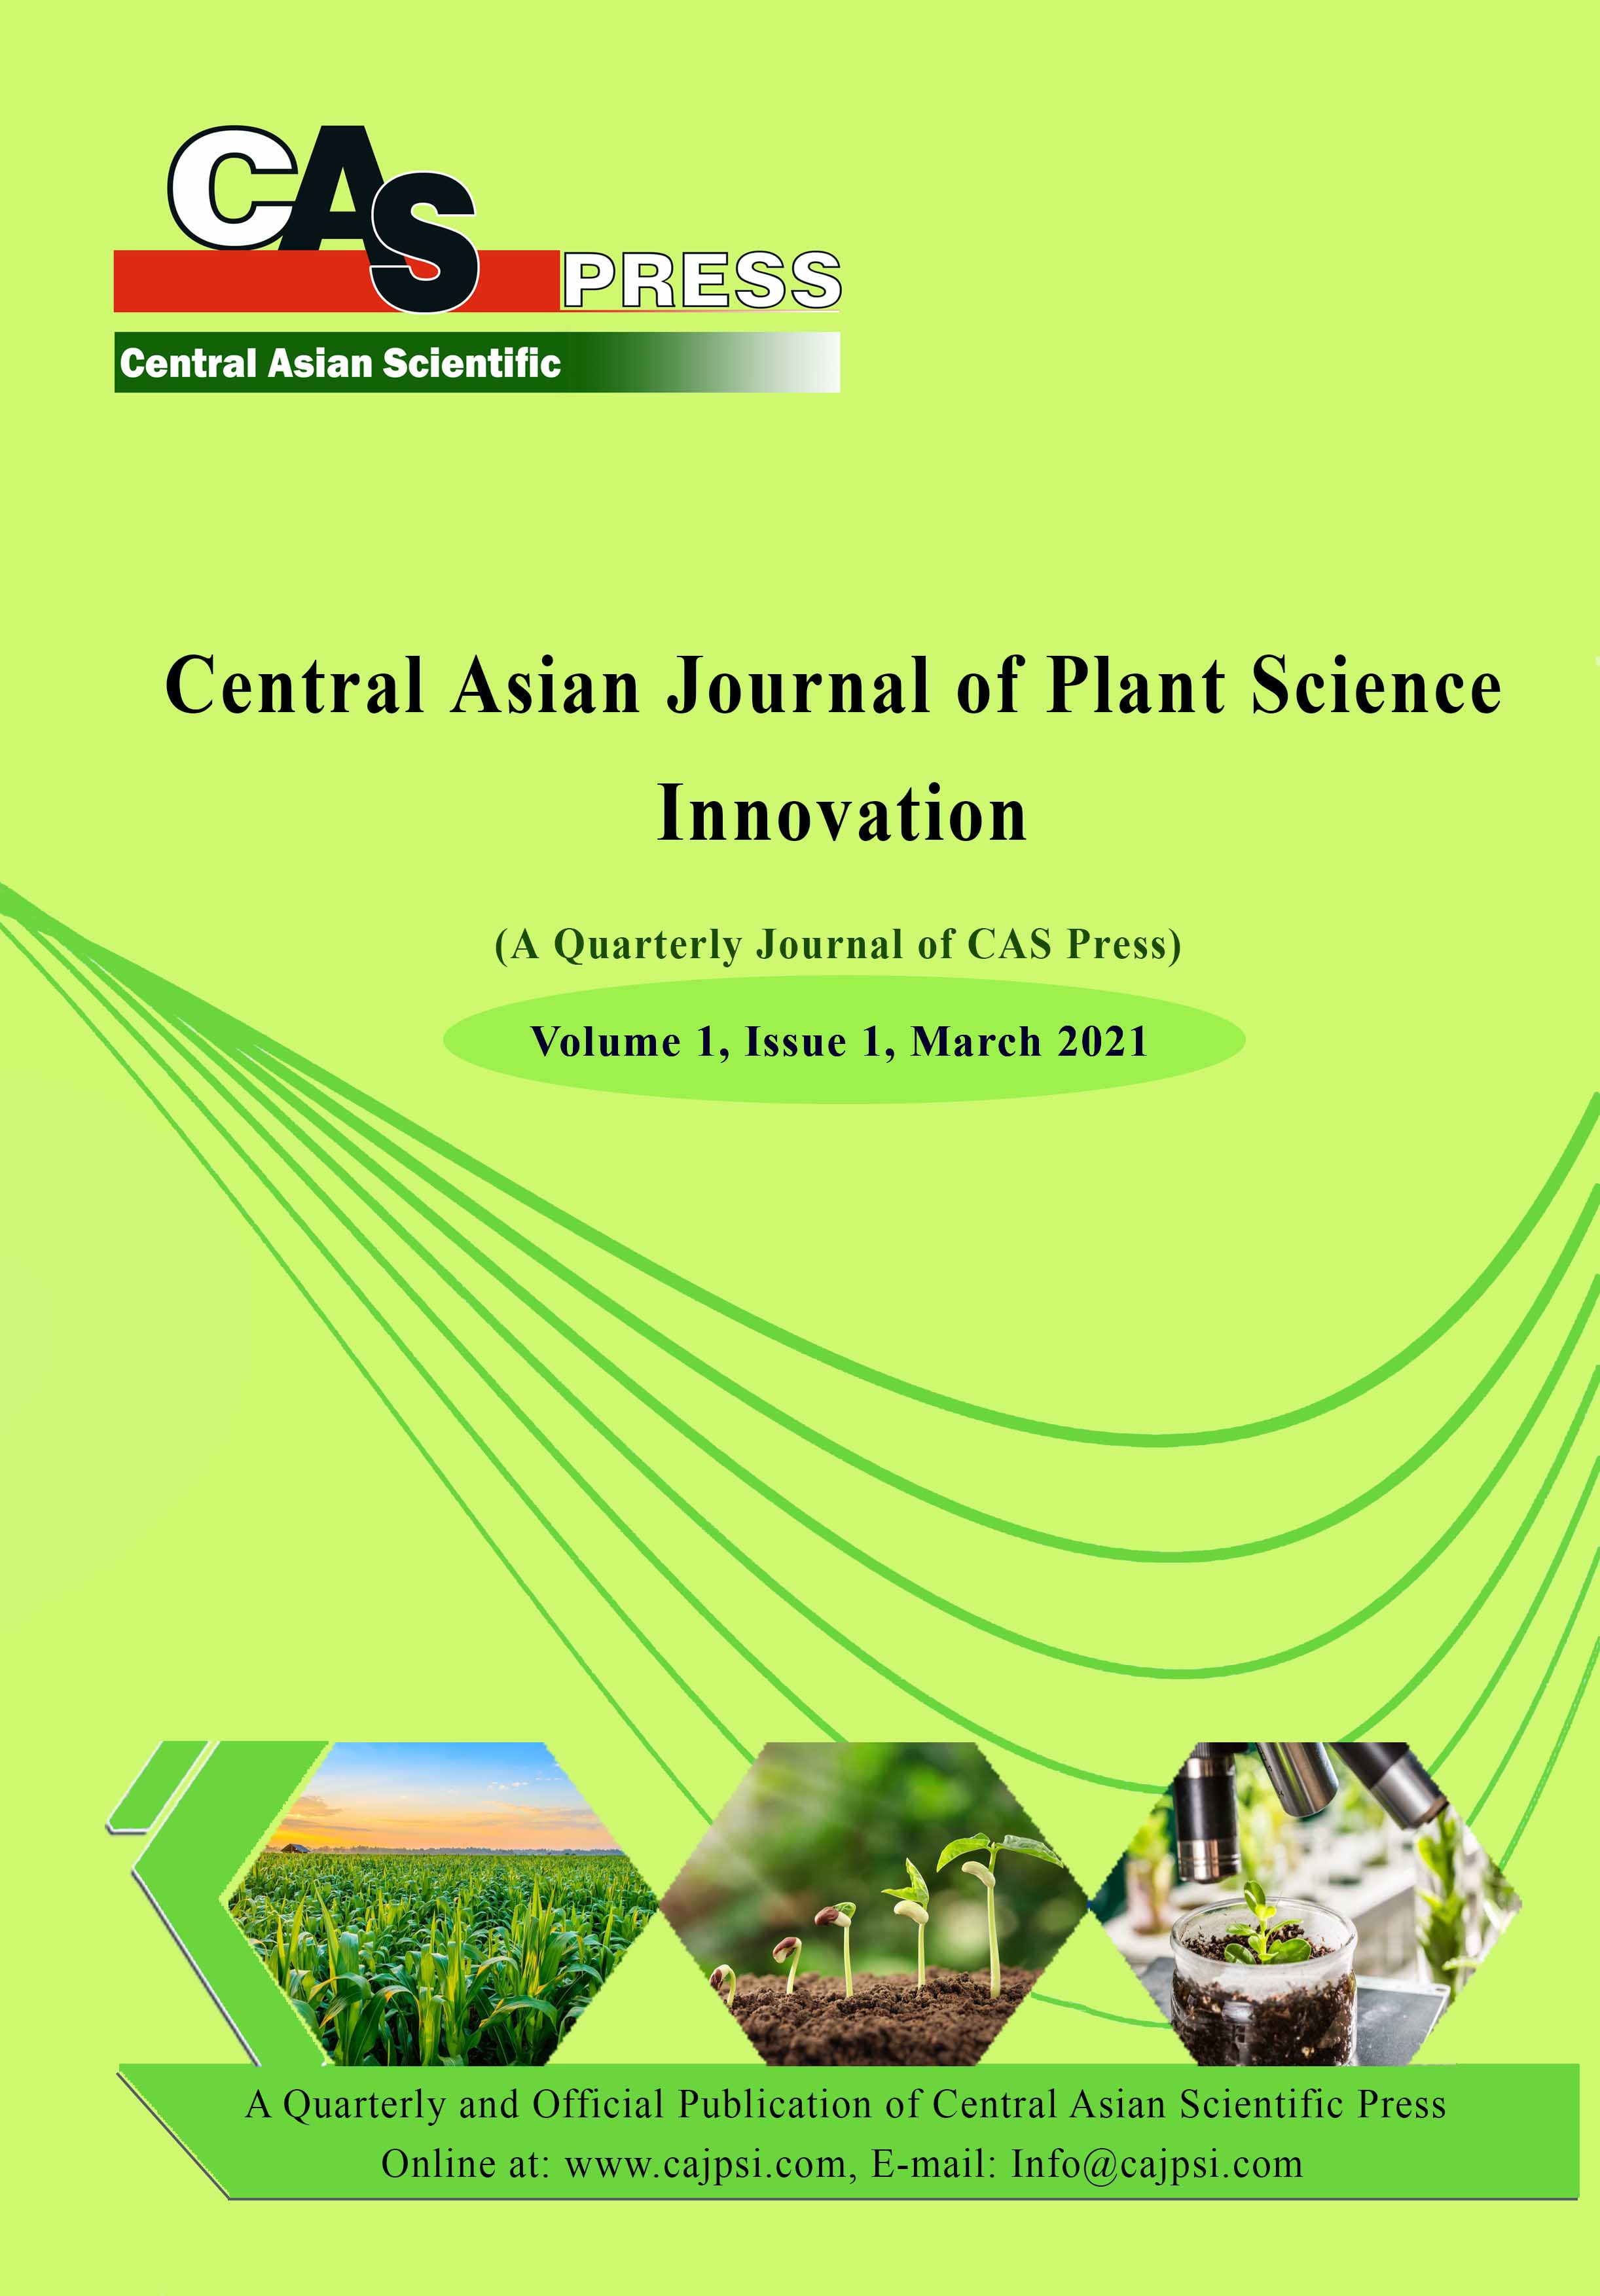 Central Asian Journal of Plant Science Innovation